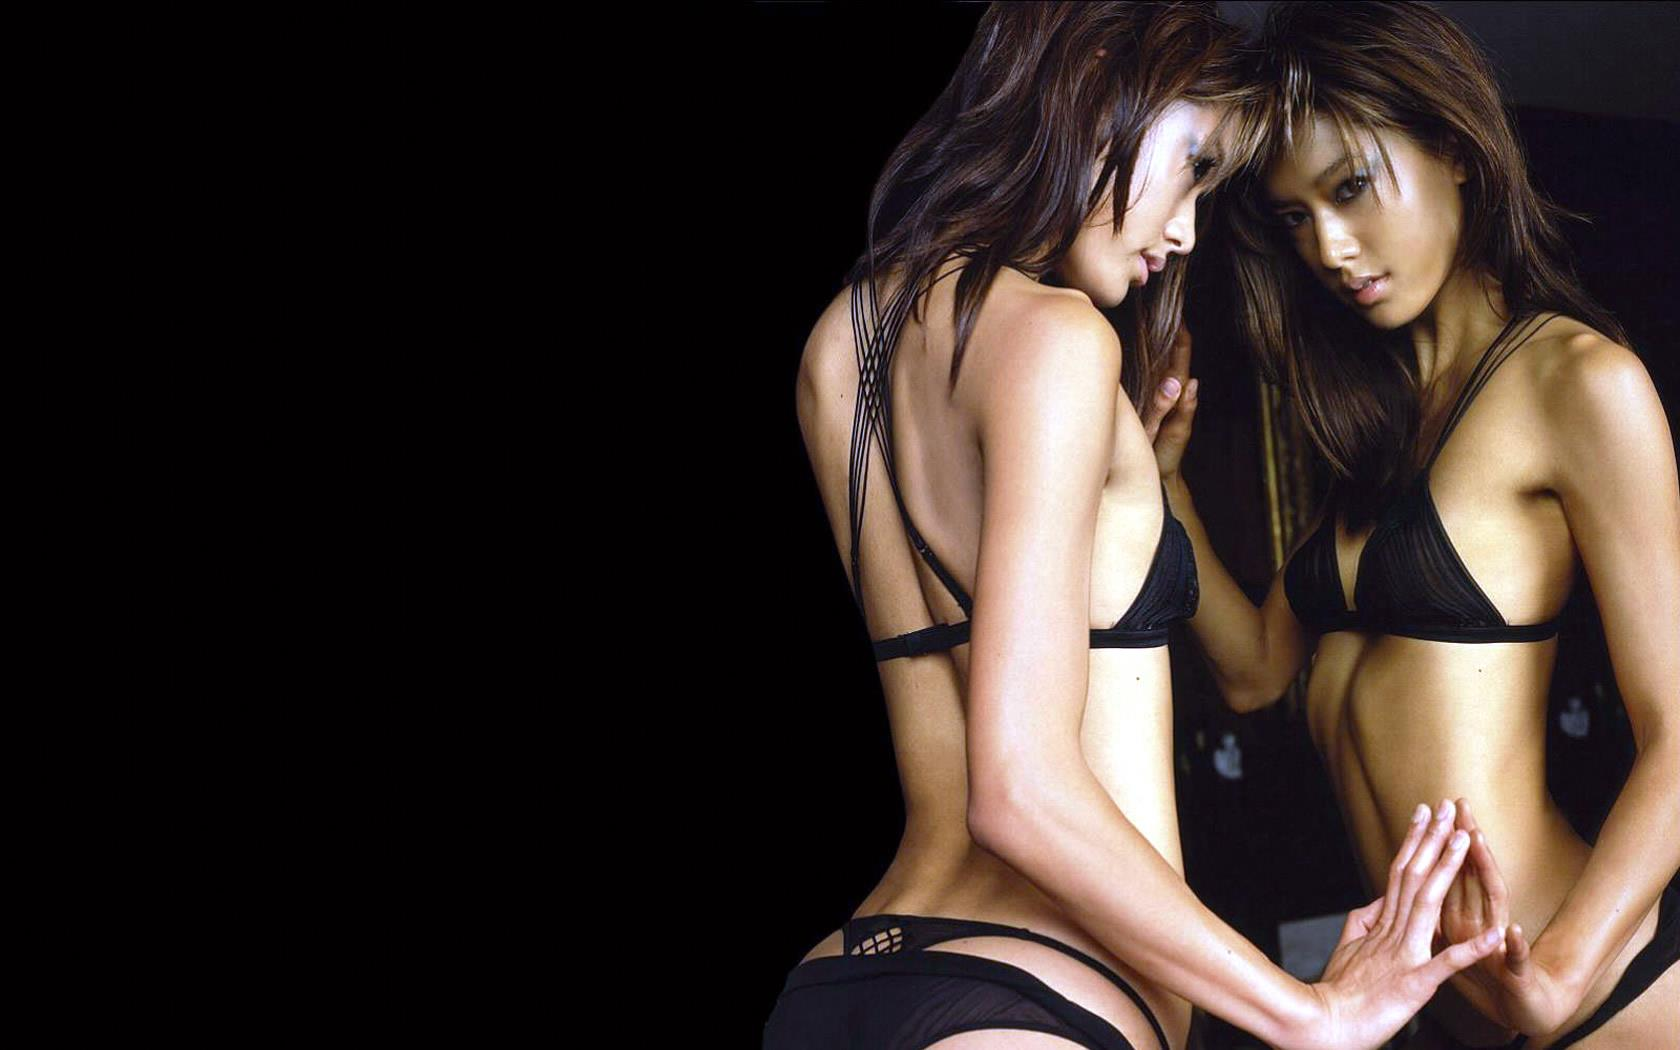 nouvelle-serie-sexy-wallpapers-extra-large_06